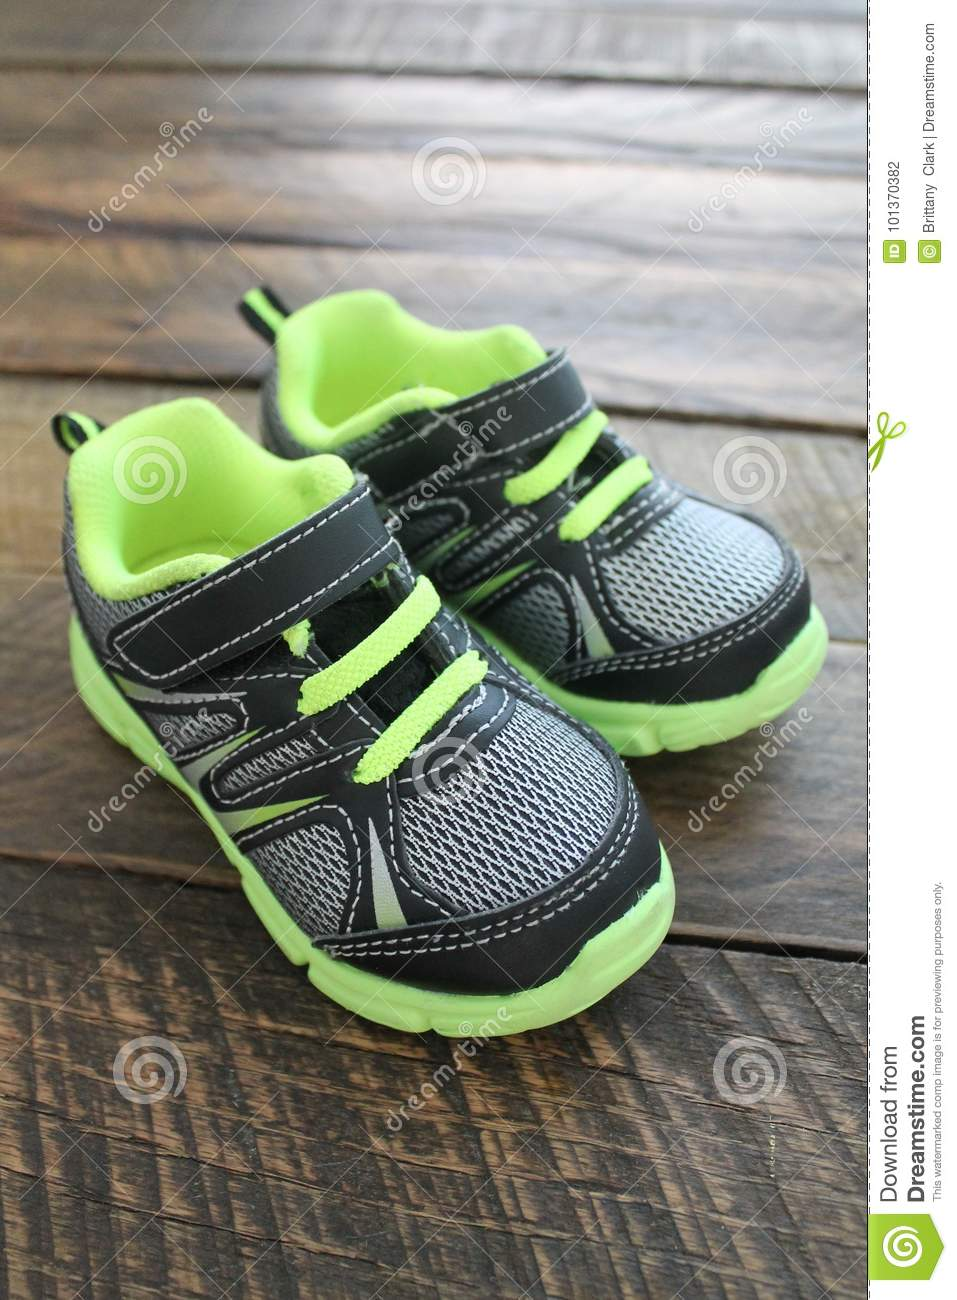 Tennis For Toddlers Boys And Toddlers Athletic Tennis Shoes Stock Photo Image Of